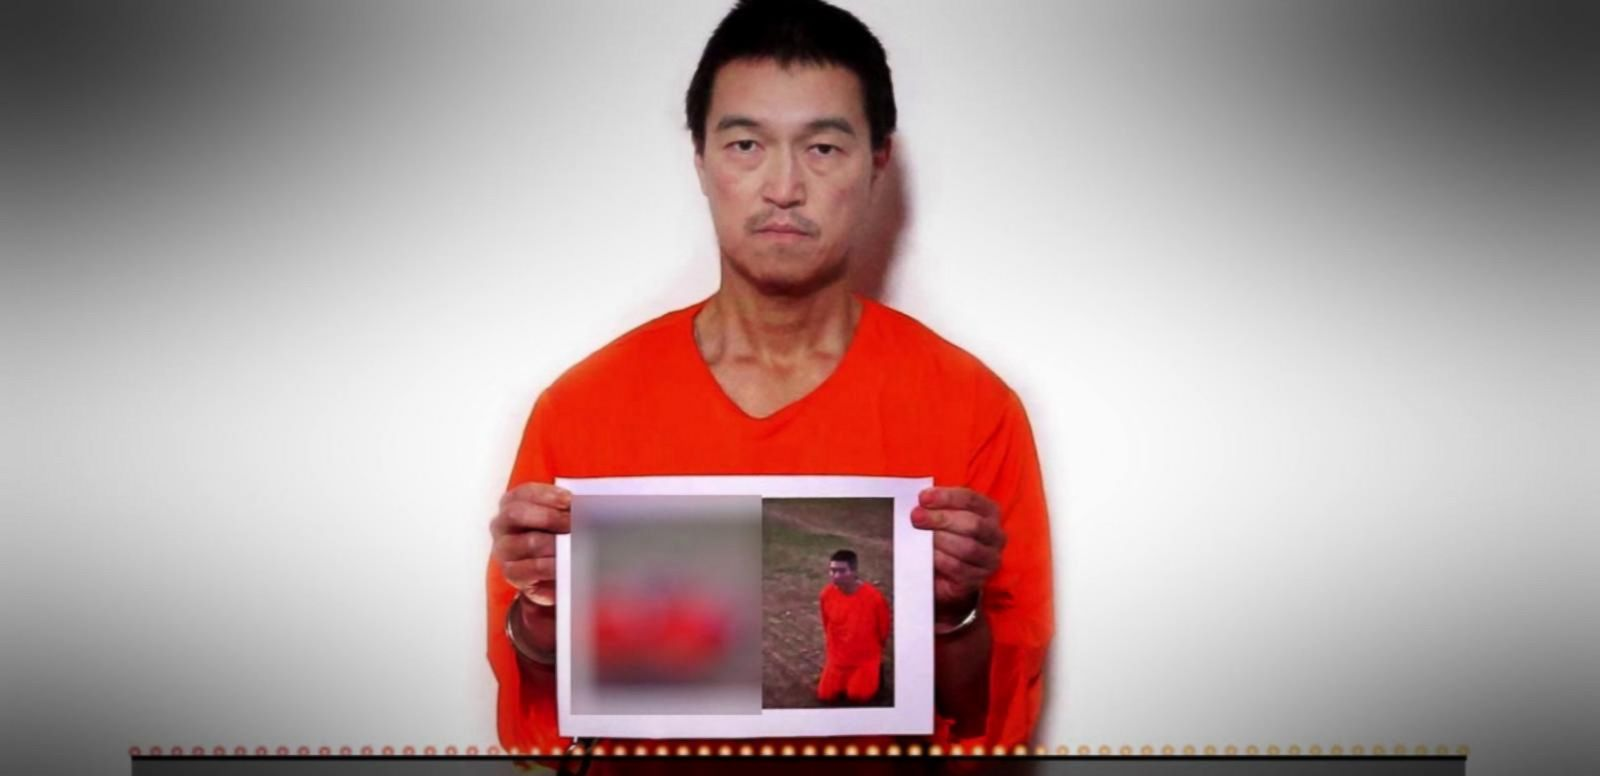 VIDEO: ISIS Claims Responsibility for Slain Japanese Hostage